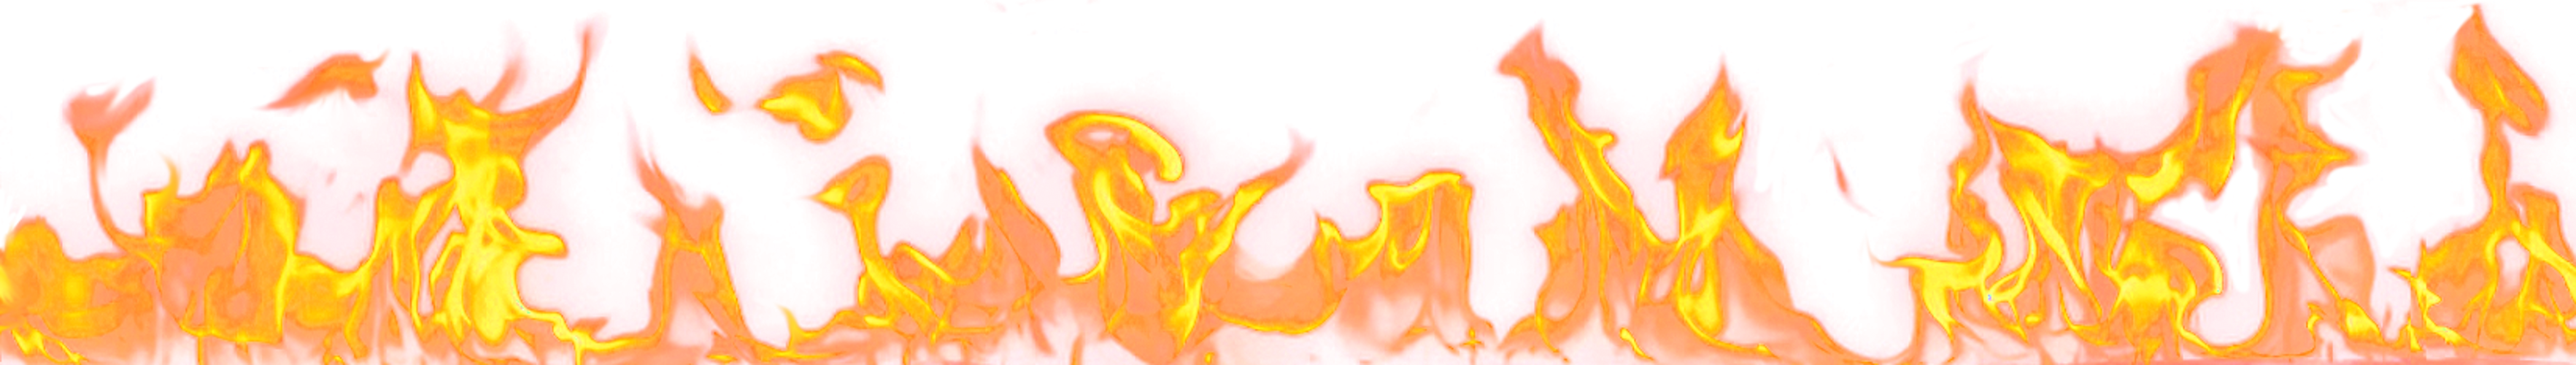 Flames photo transparentpng . Clipart png fire